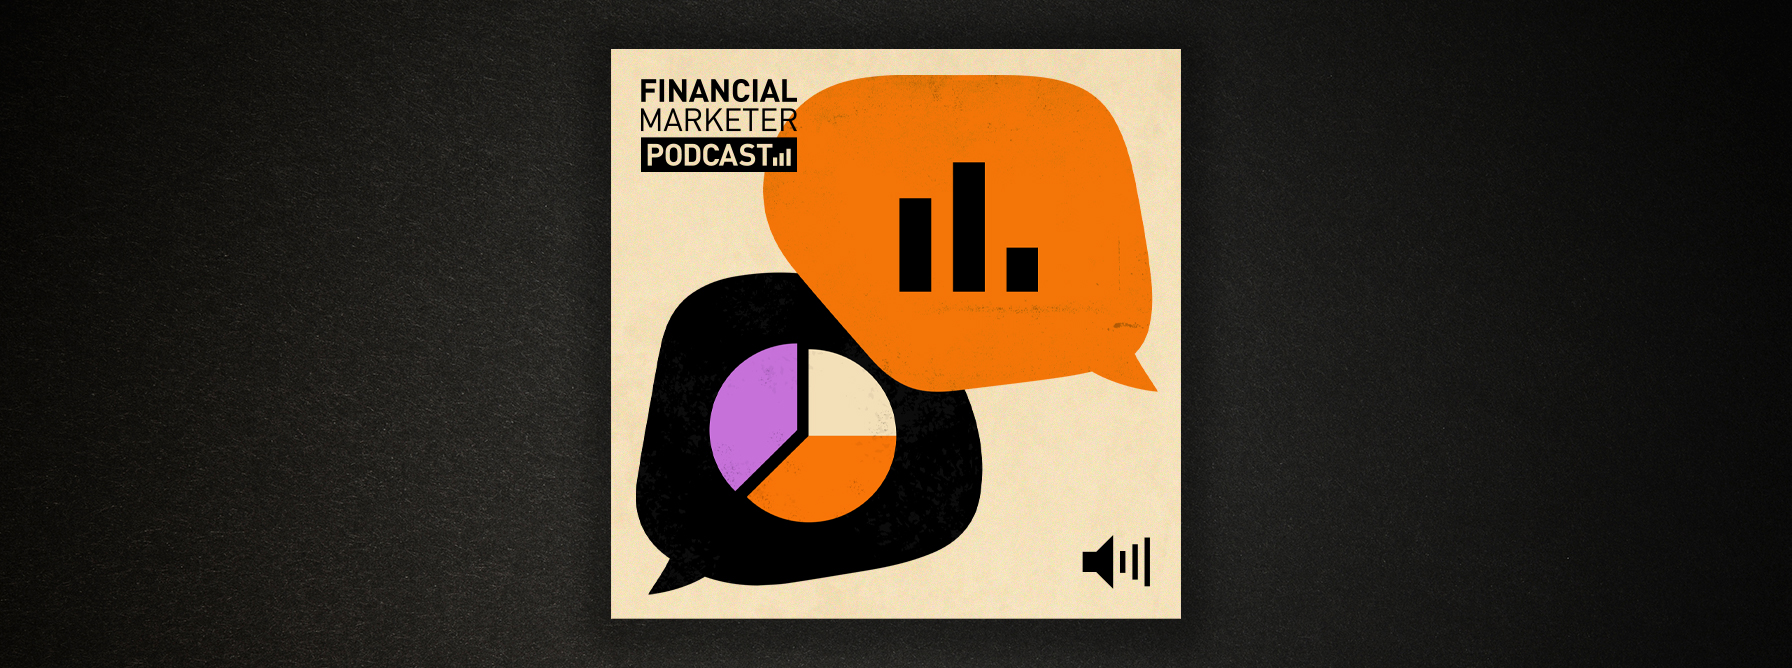 The-conversations-global-asset-managers-need-to-start-with-investors-banner header